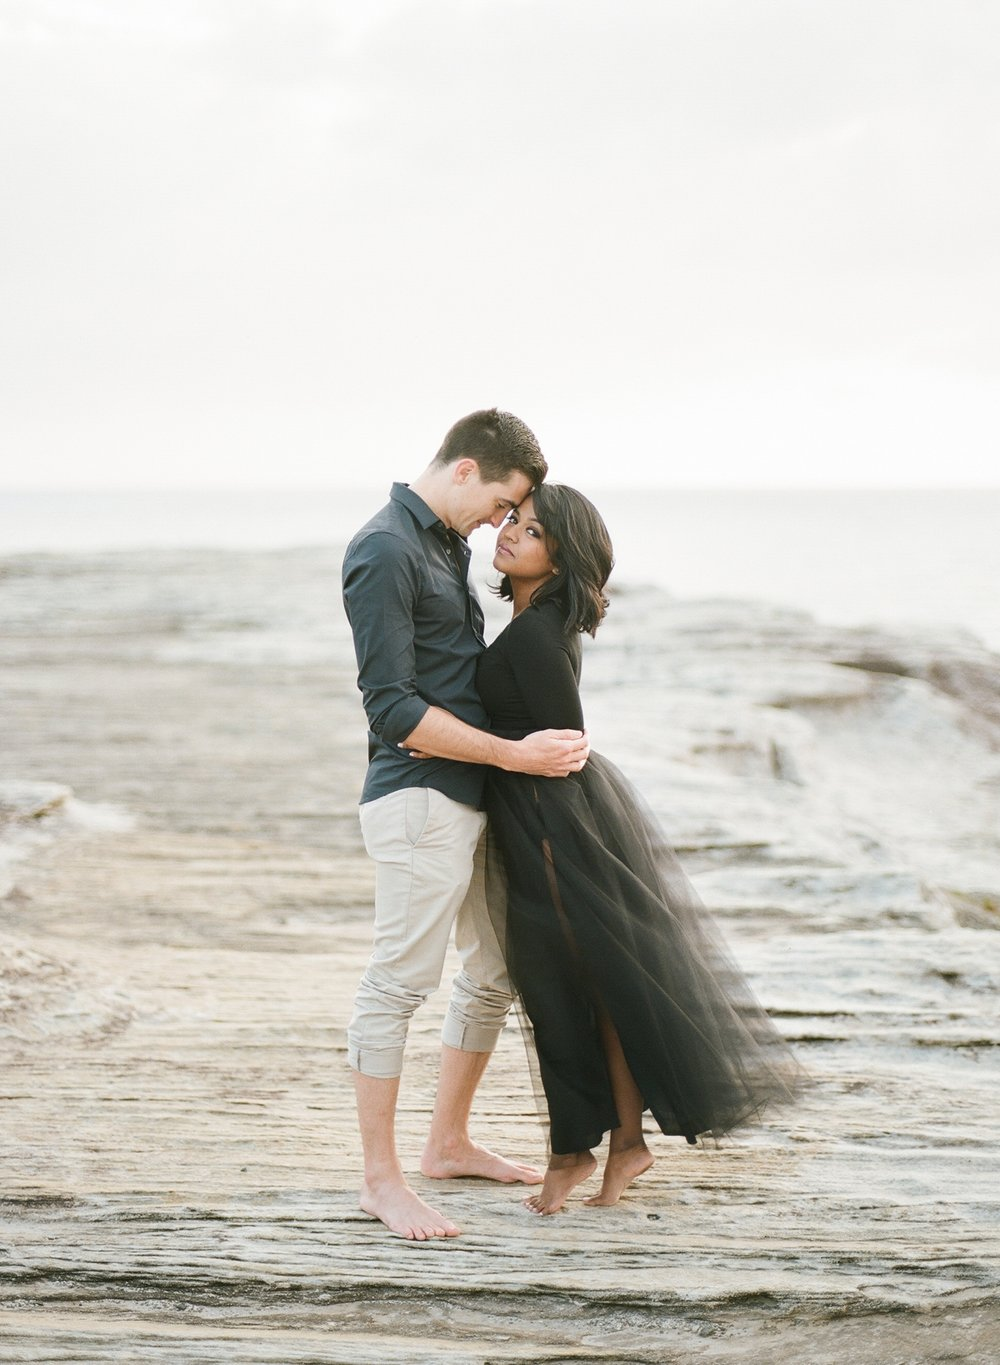 Coastal Sydney couples session by Mr Edwards Photography_0737_1112.jpg